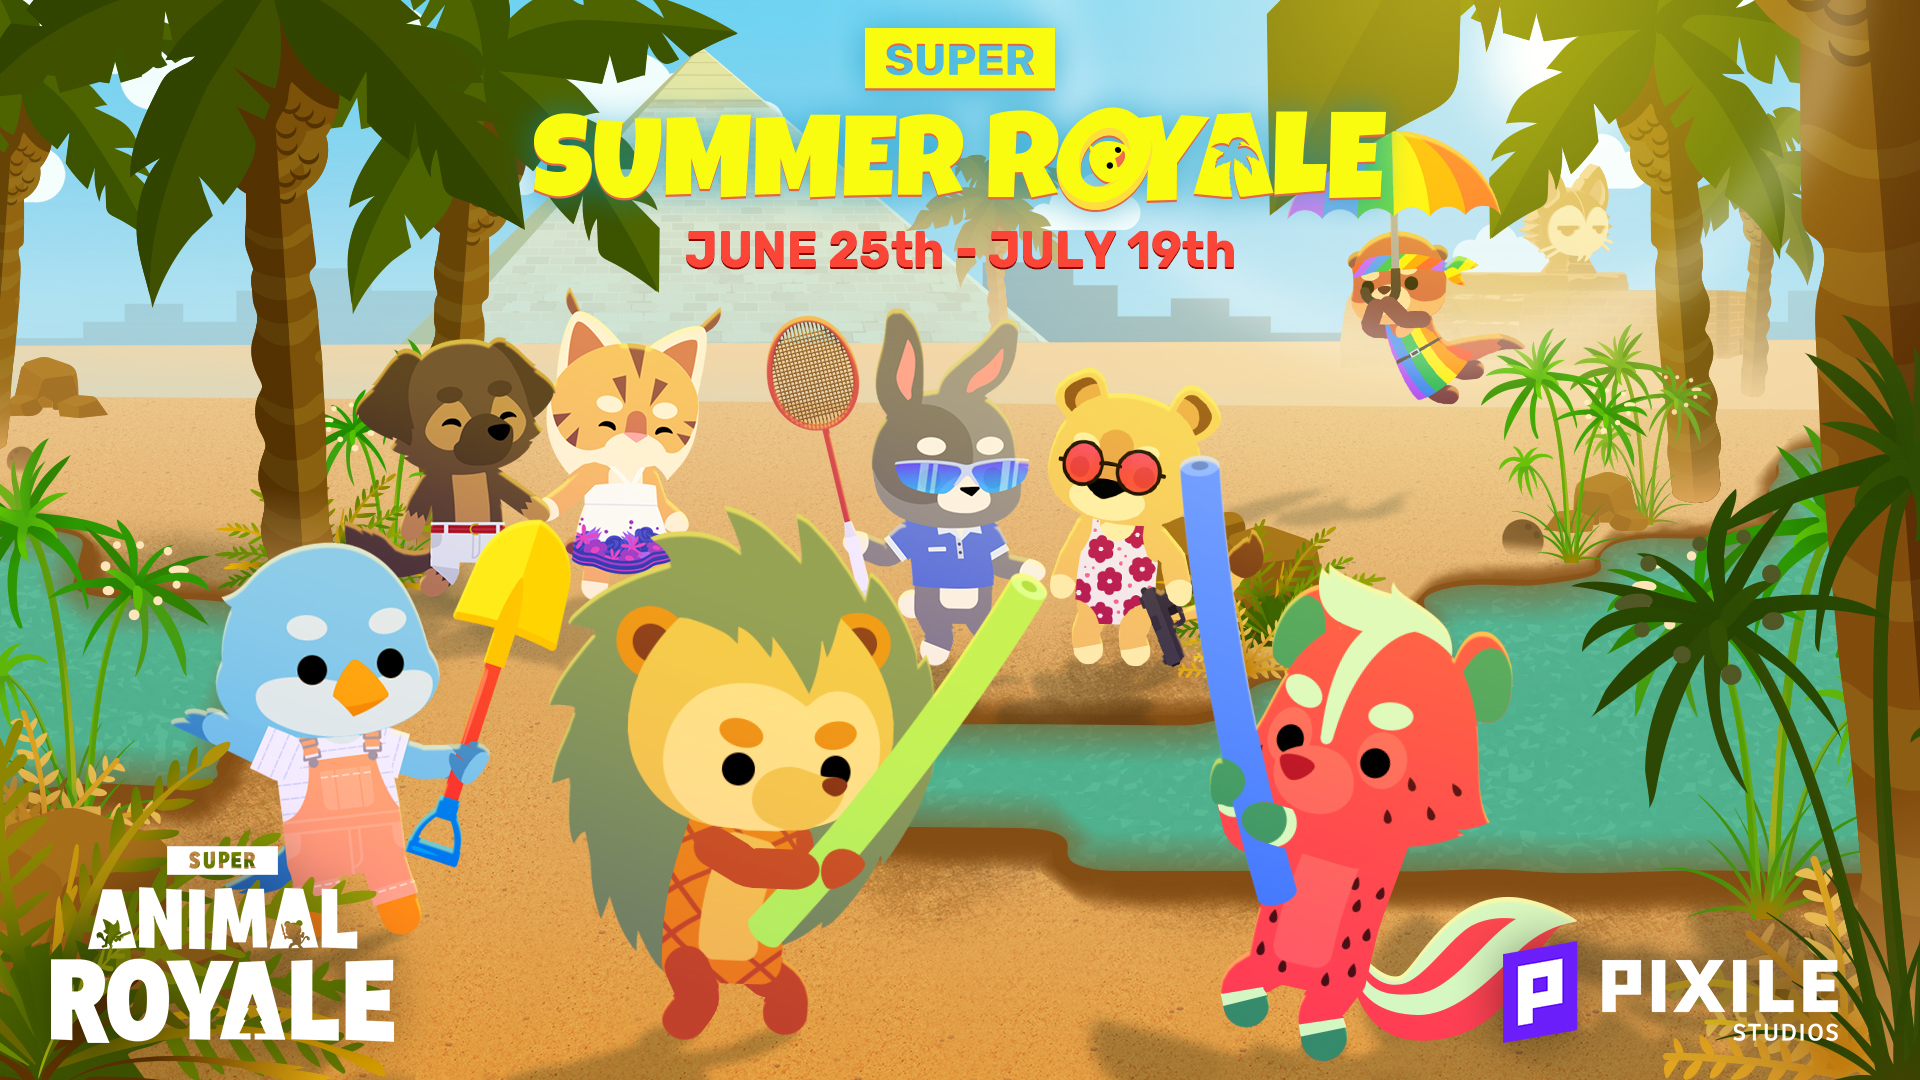 Super Summer Royale has arrived with new Super Animals and quick chat!